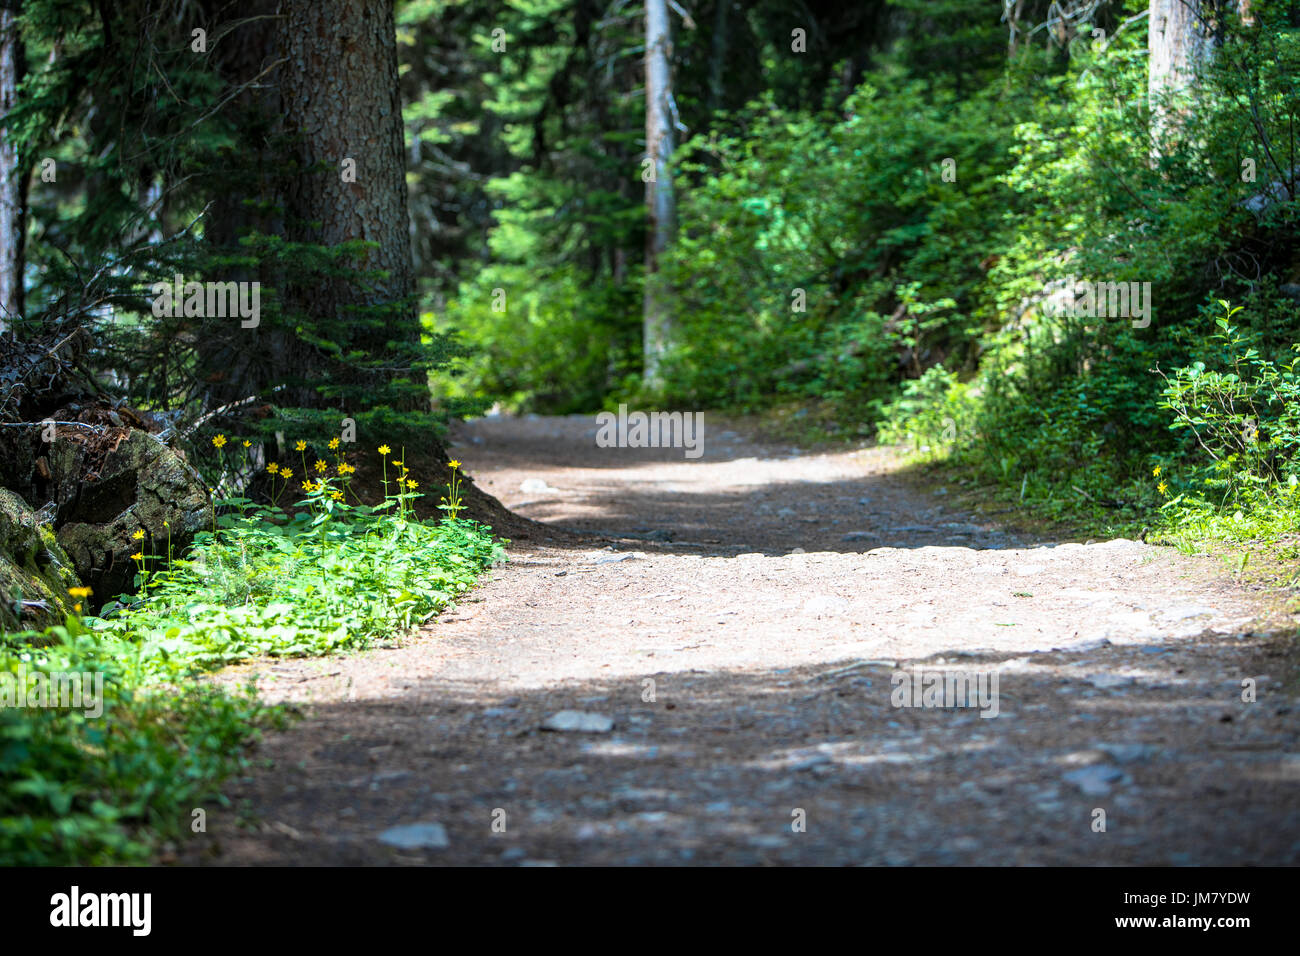 The beautiful walking paths welcome thousands of visitors every day to the incredible setting of the Canadian Rocky Mountains. - Stock Image